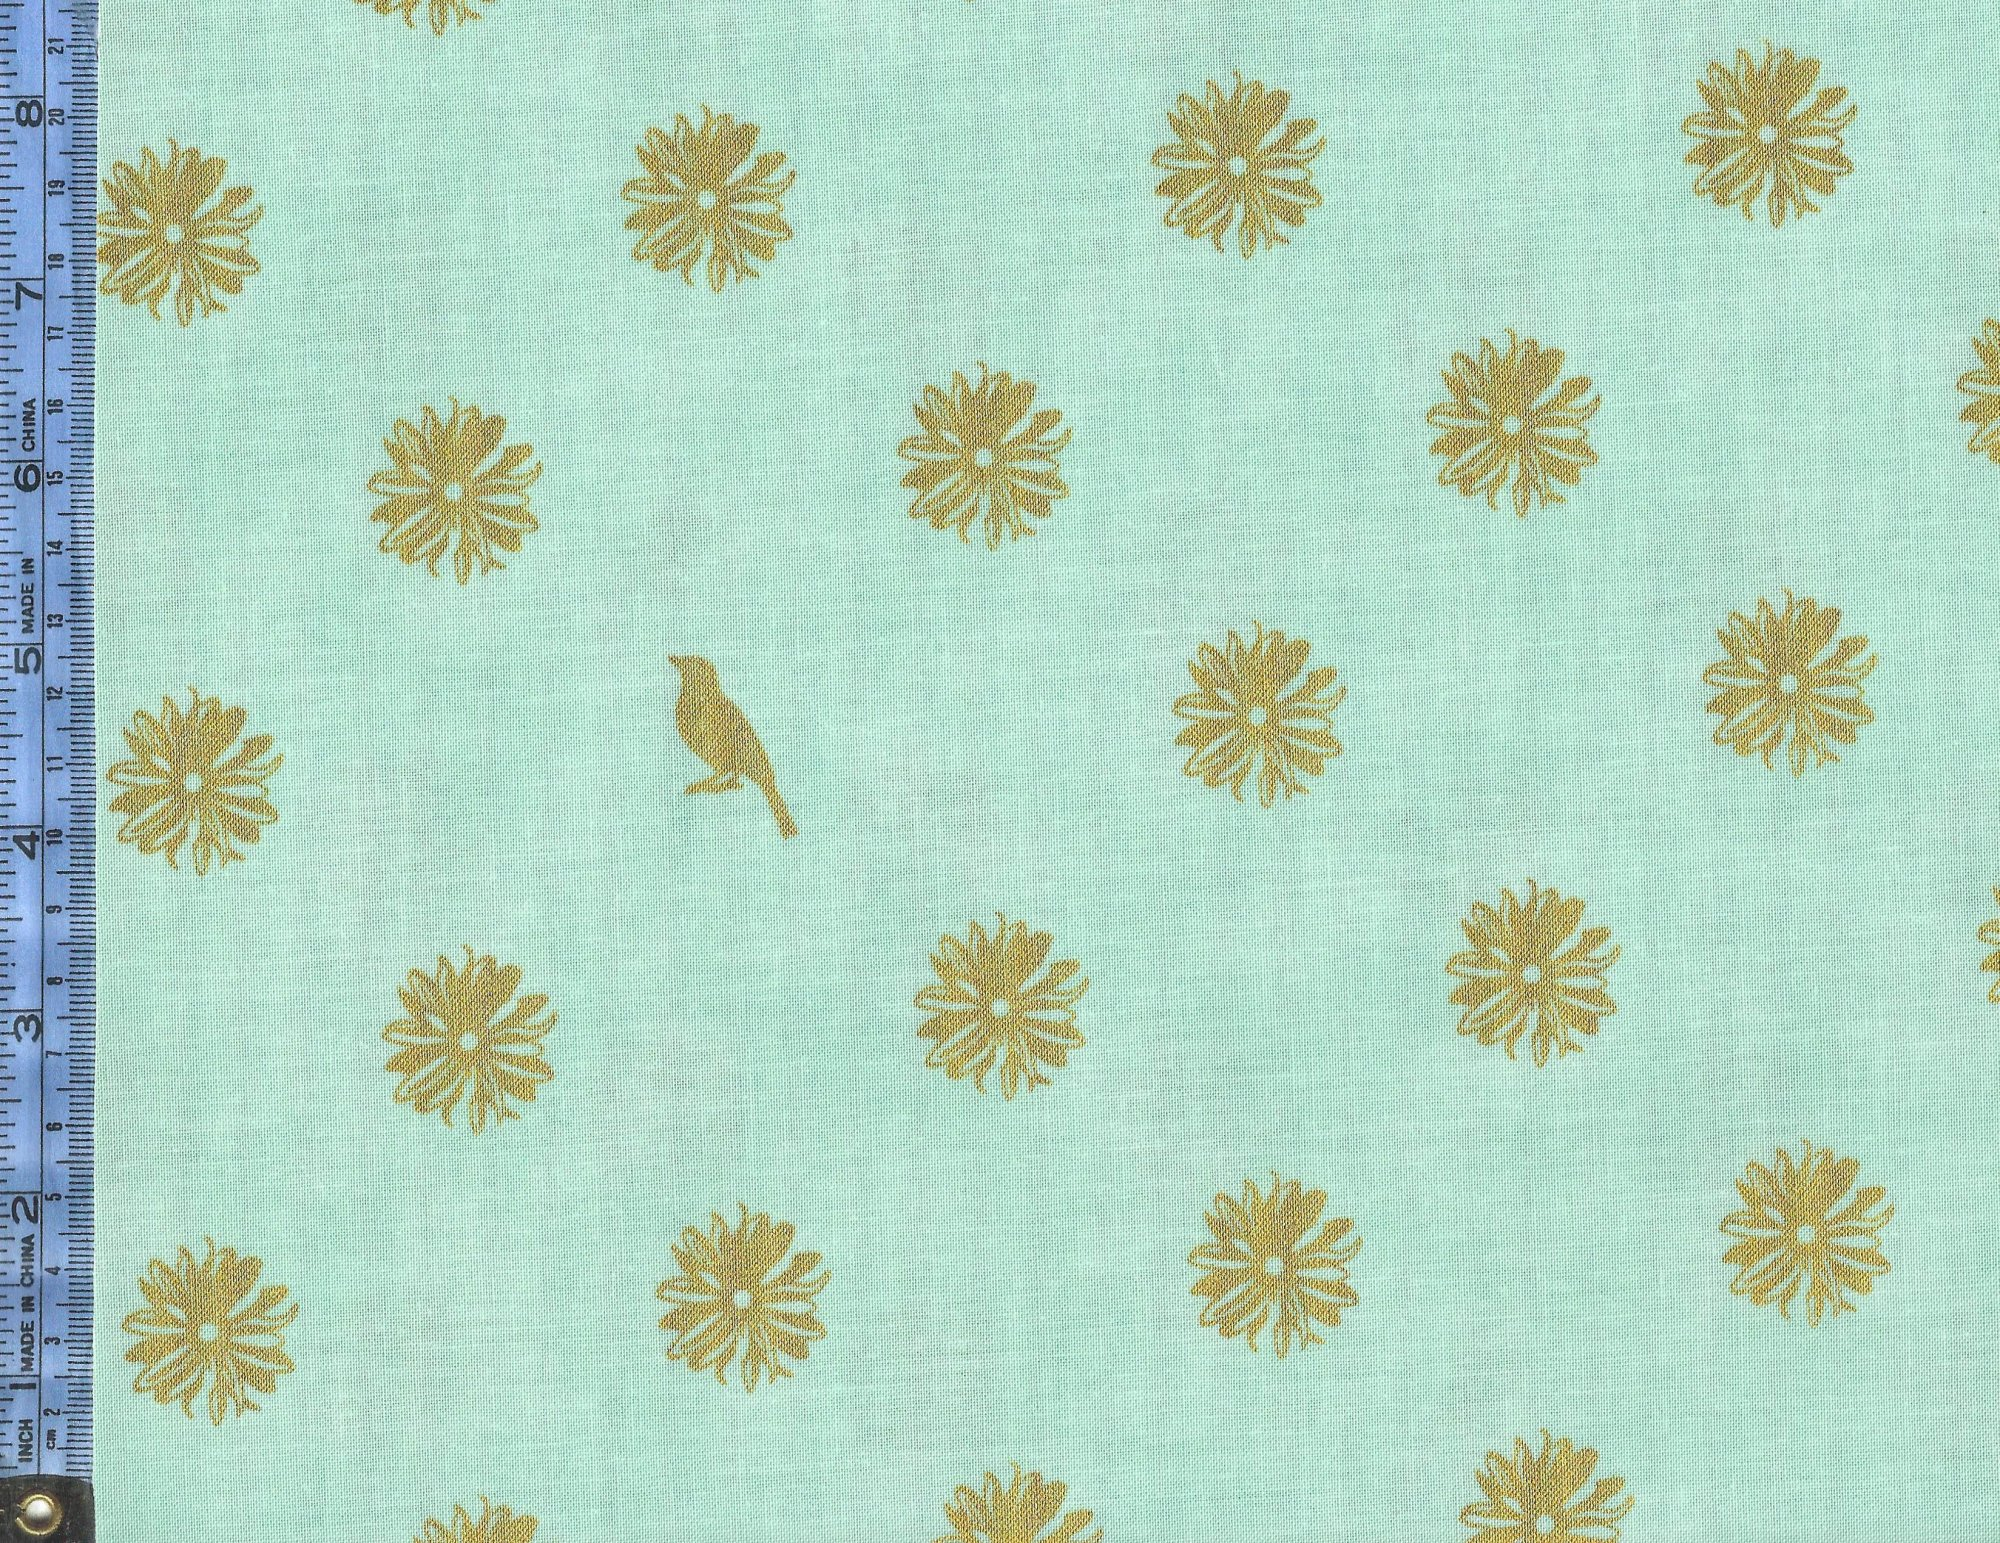 Shiny Objects - (3024-1) metallic gold flowers and birds on light blue-green background